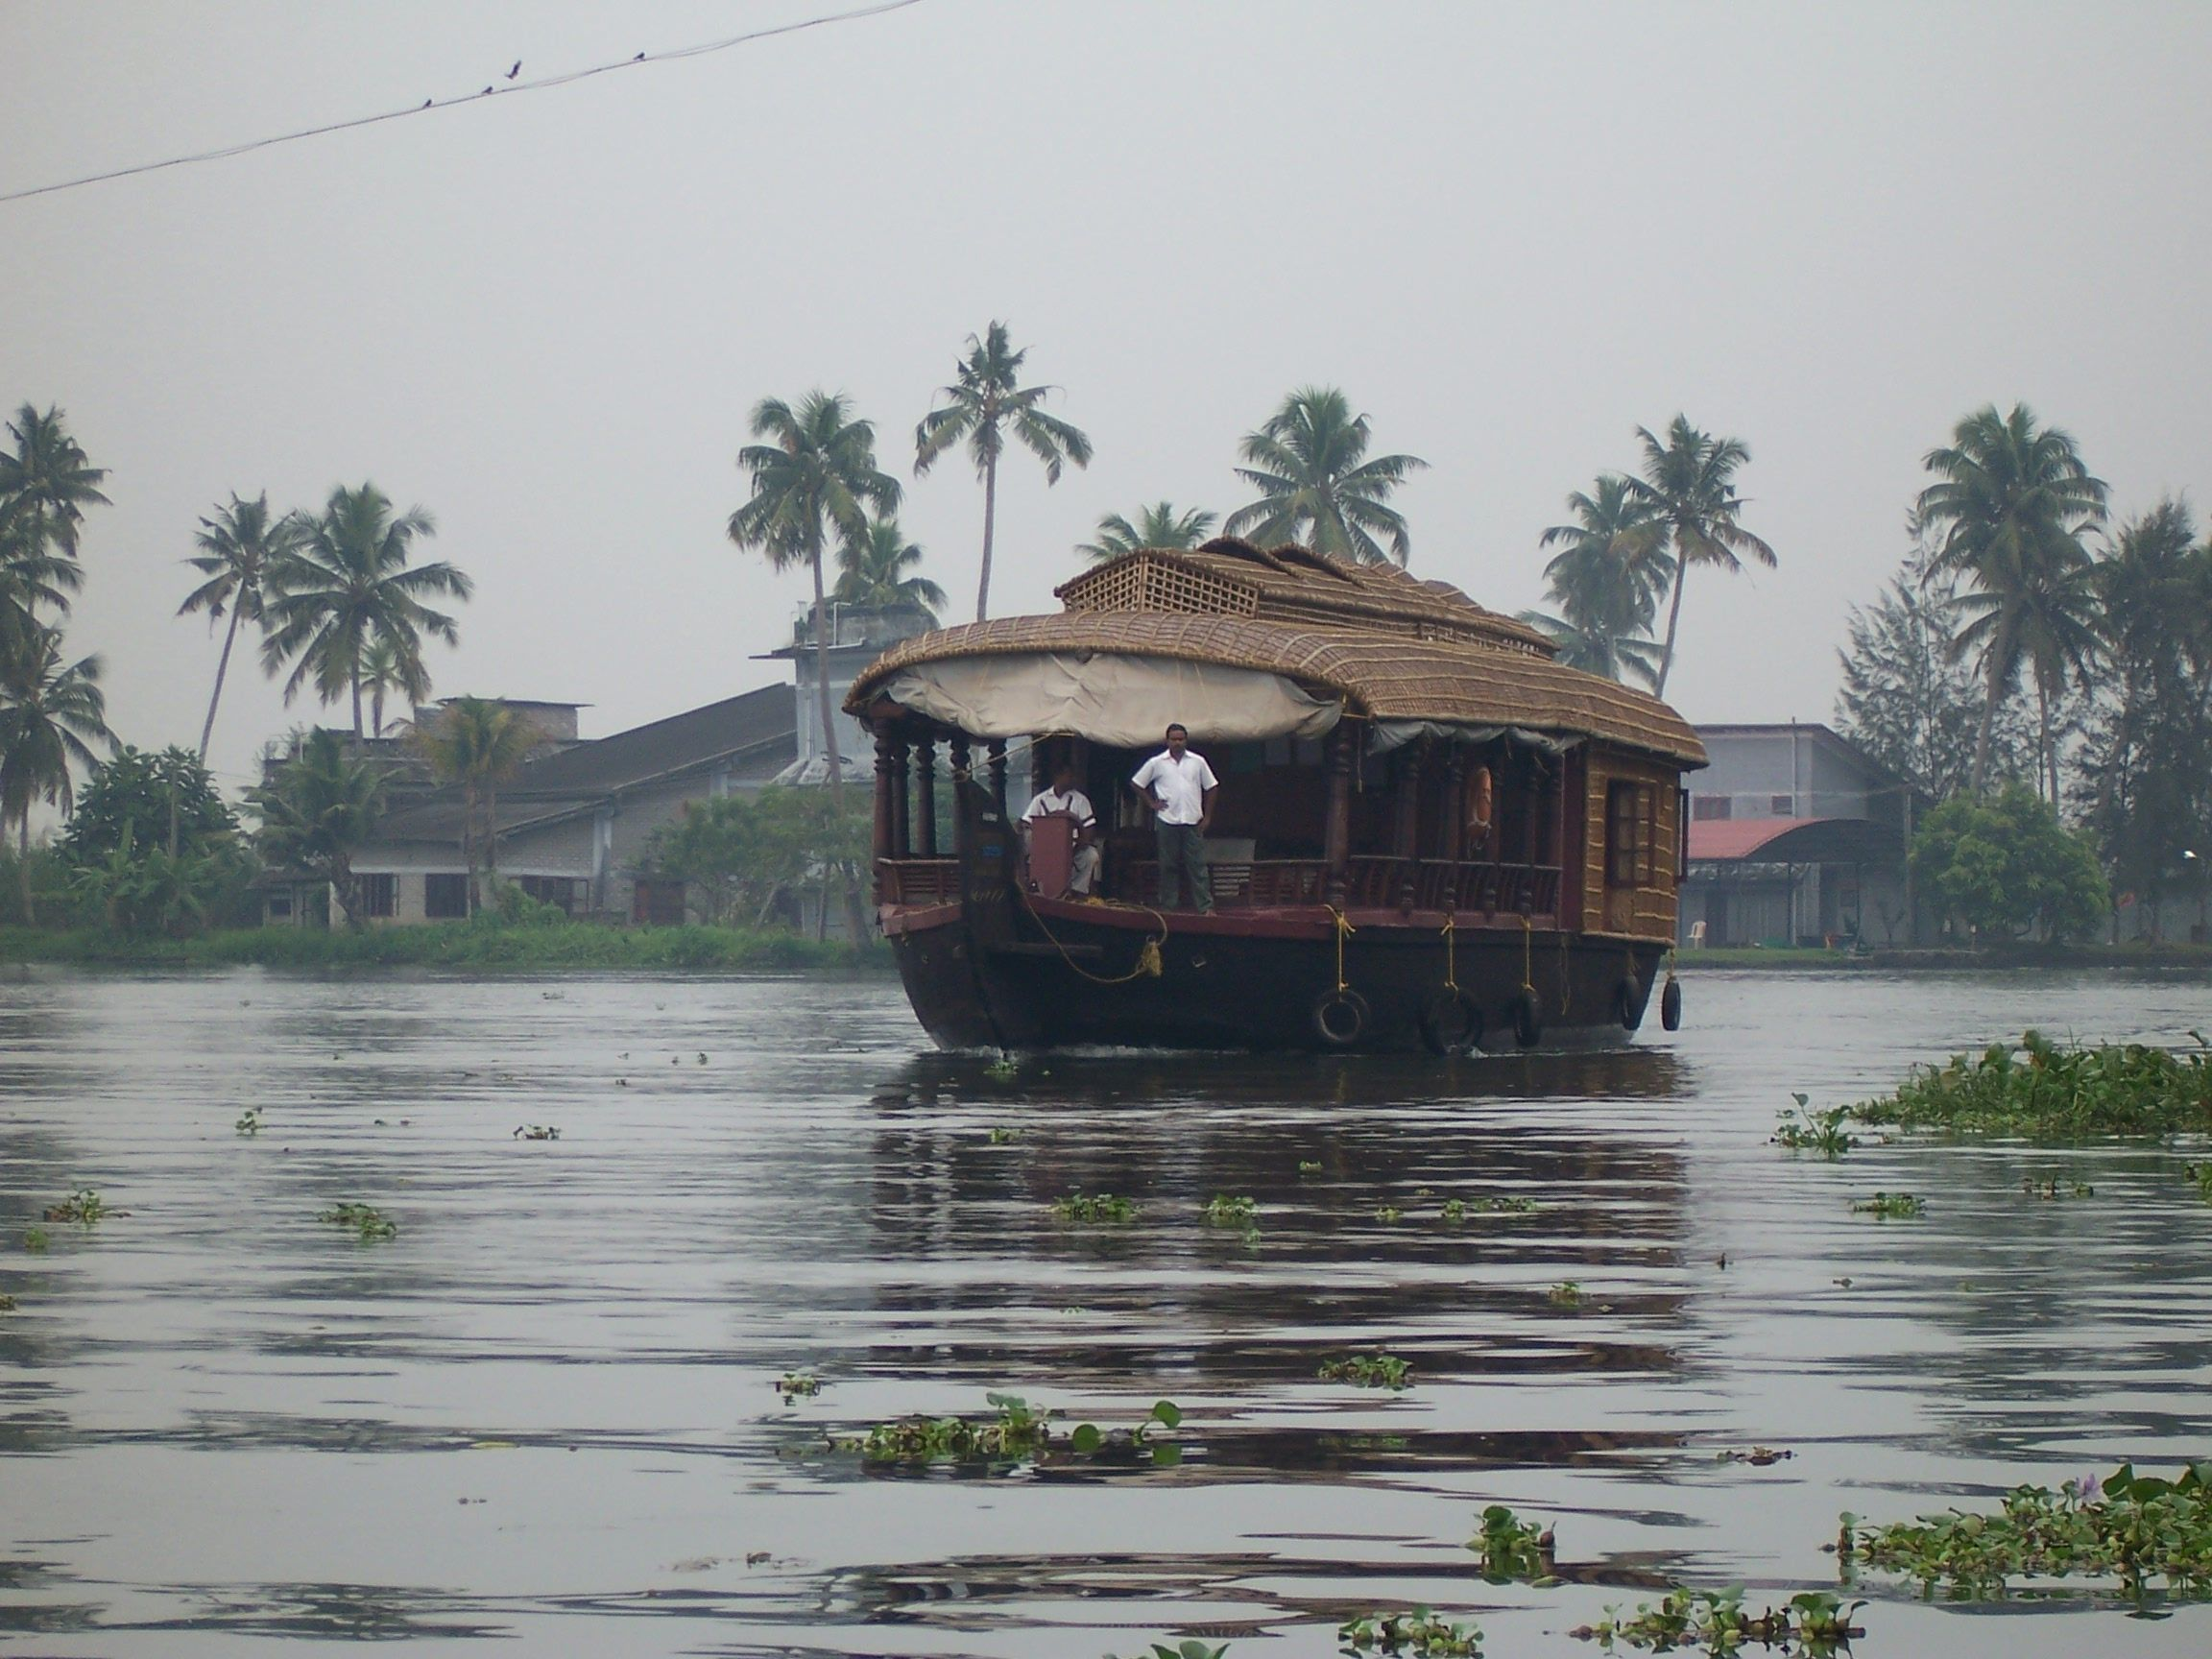 A house boat chugs through the morning haze on Lake Vembanad. The day after rains in the area.